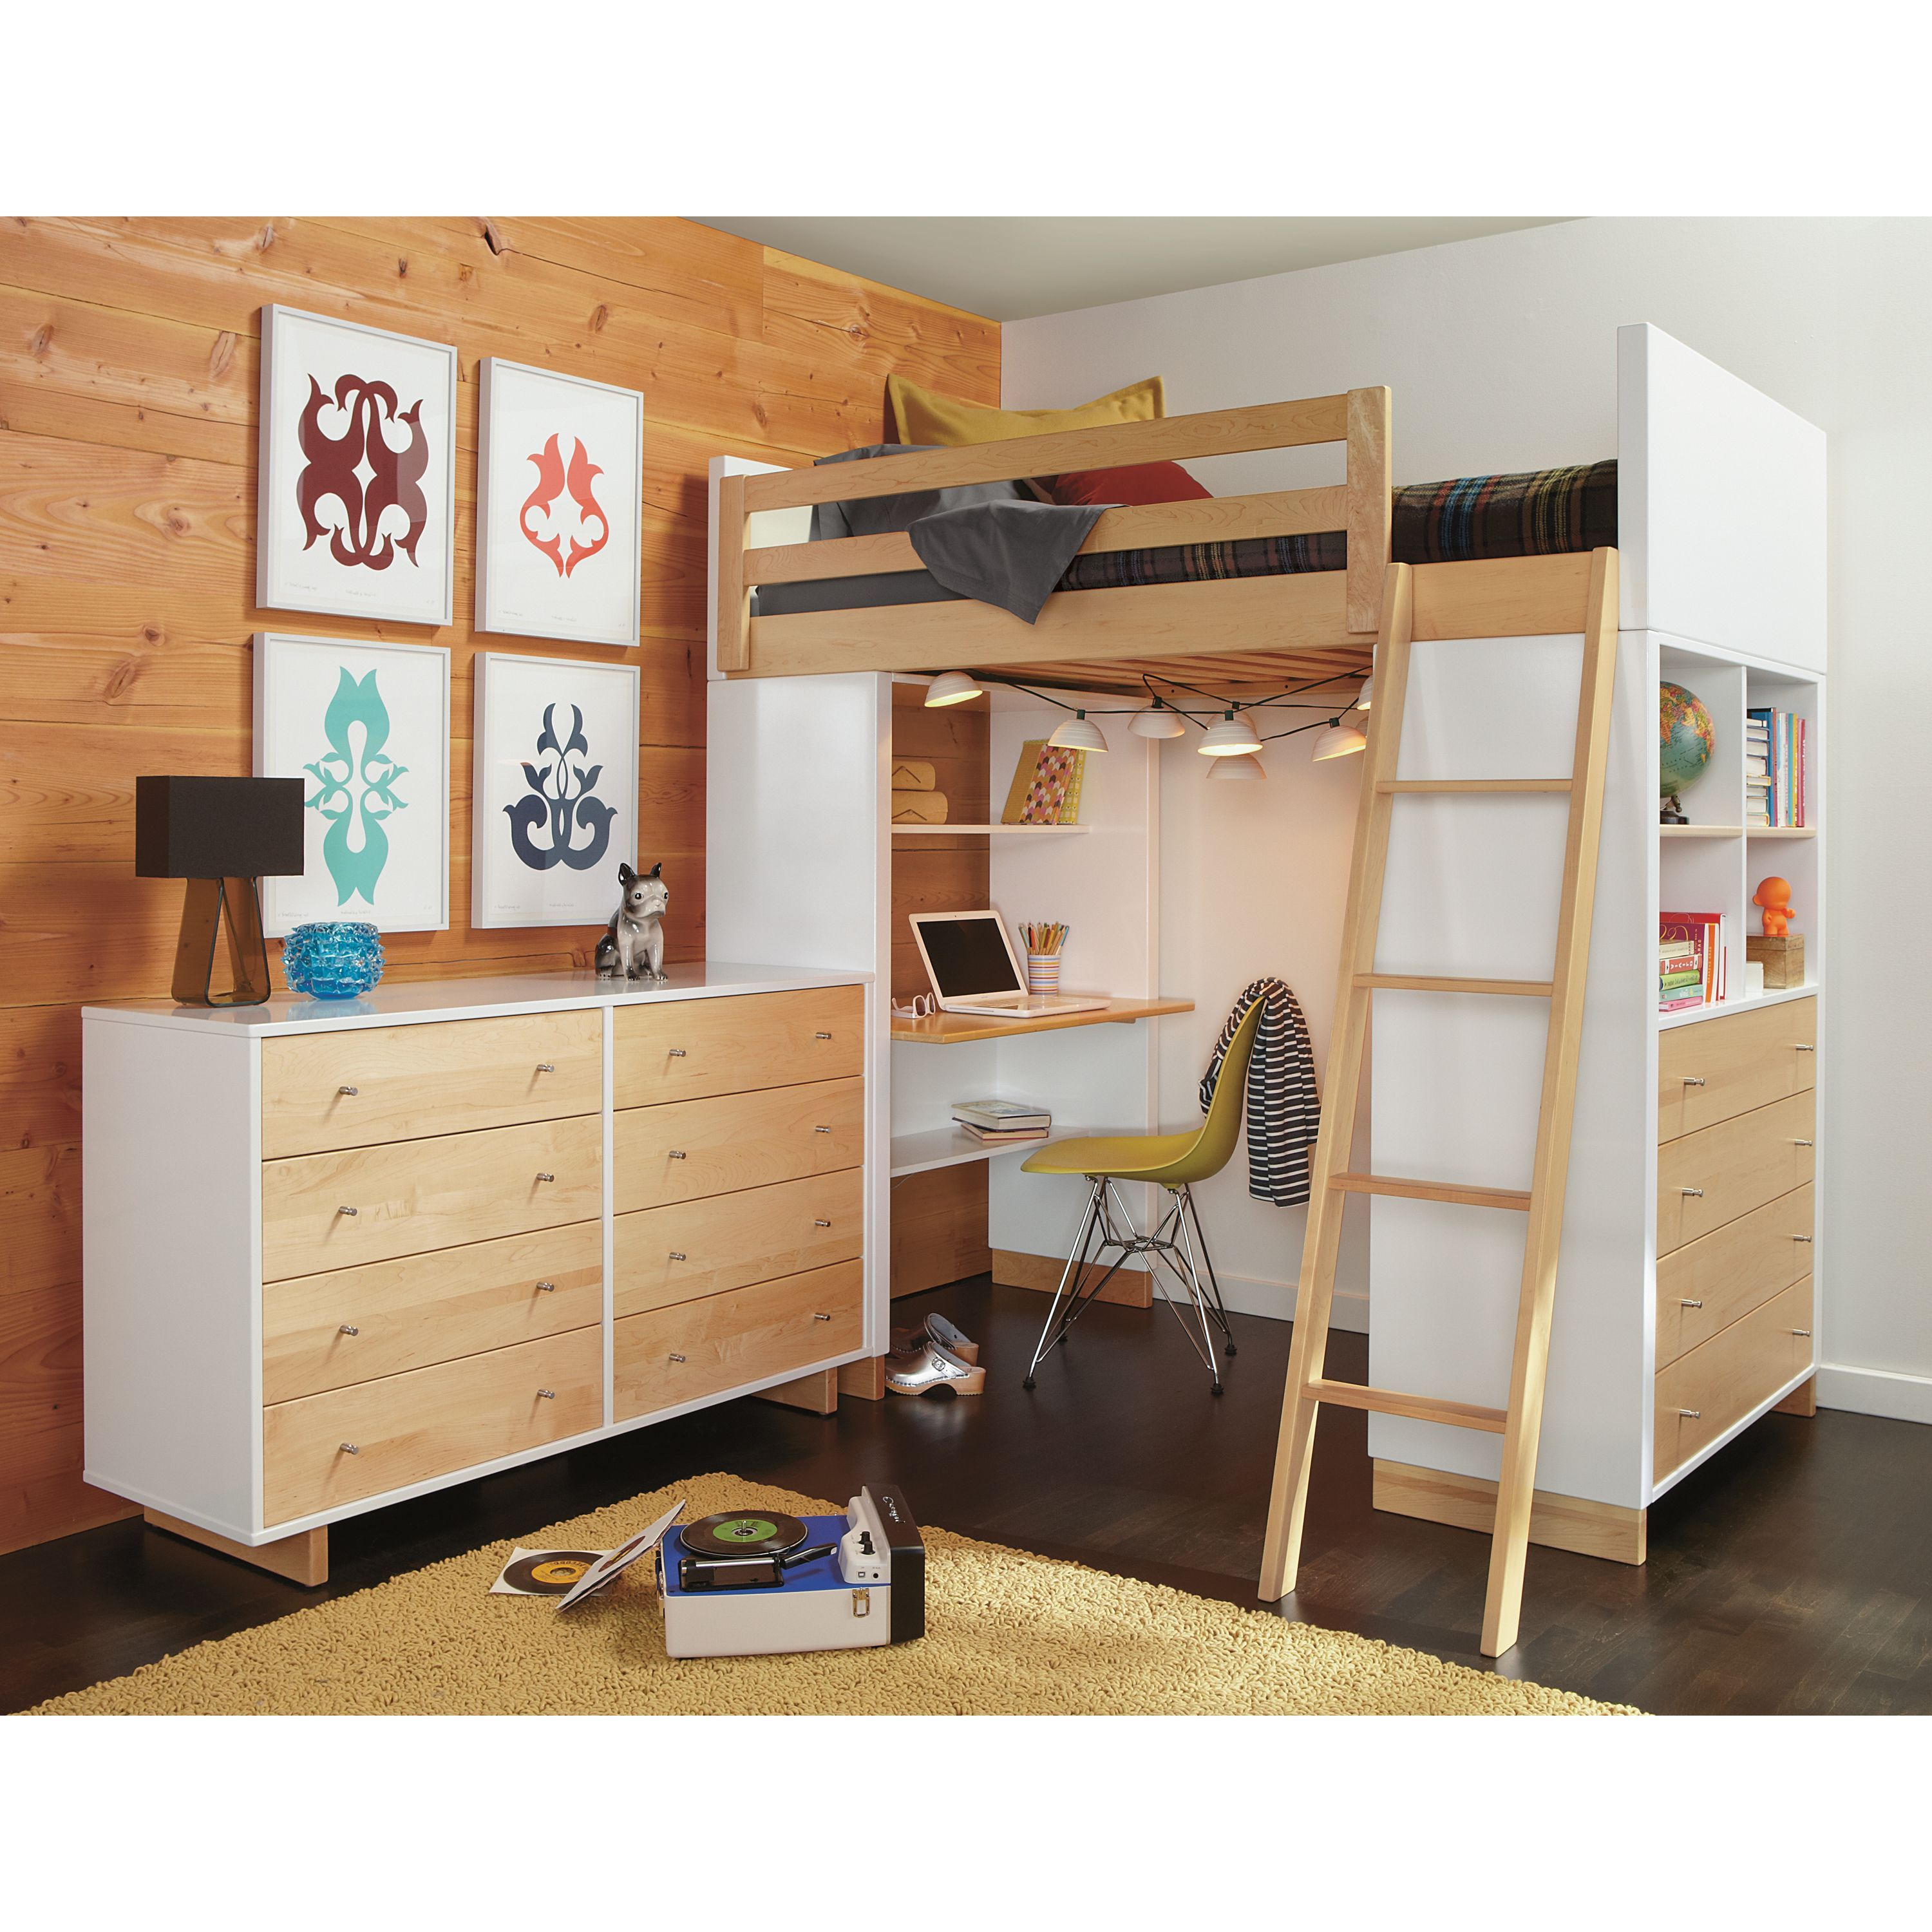 Moda Loft Beds with Desk and Dresser Options  Products  Pinterest